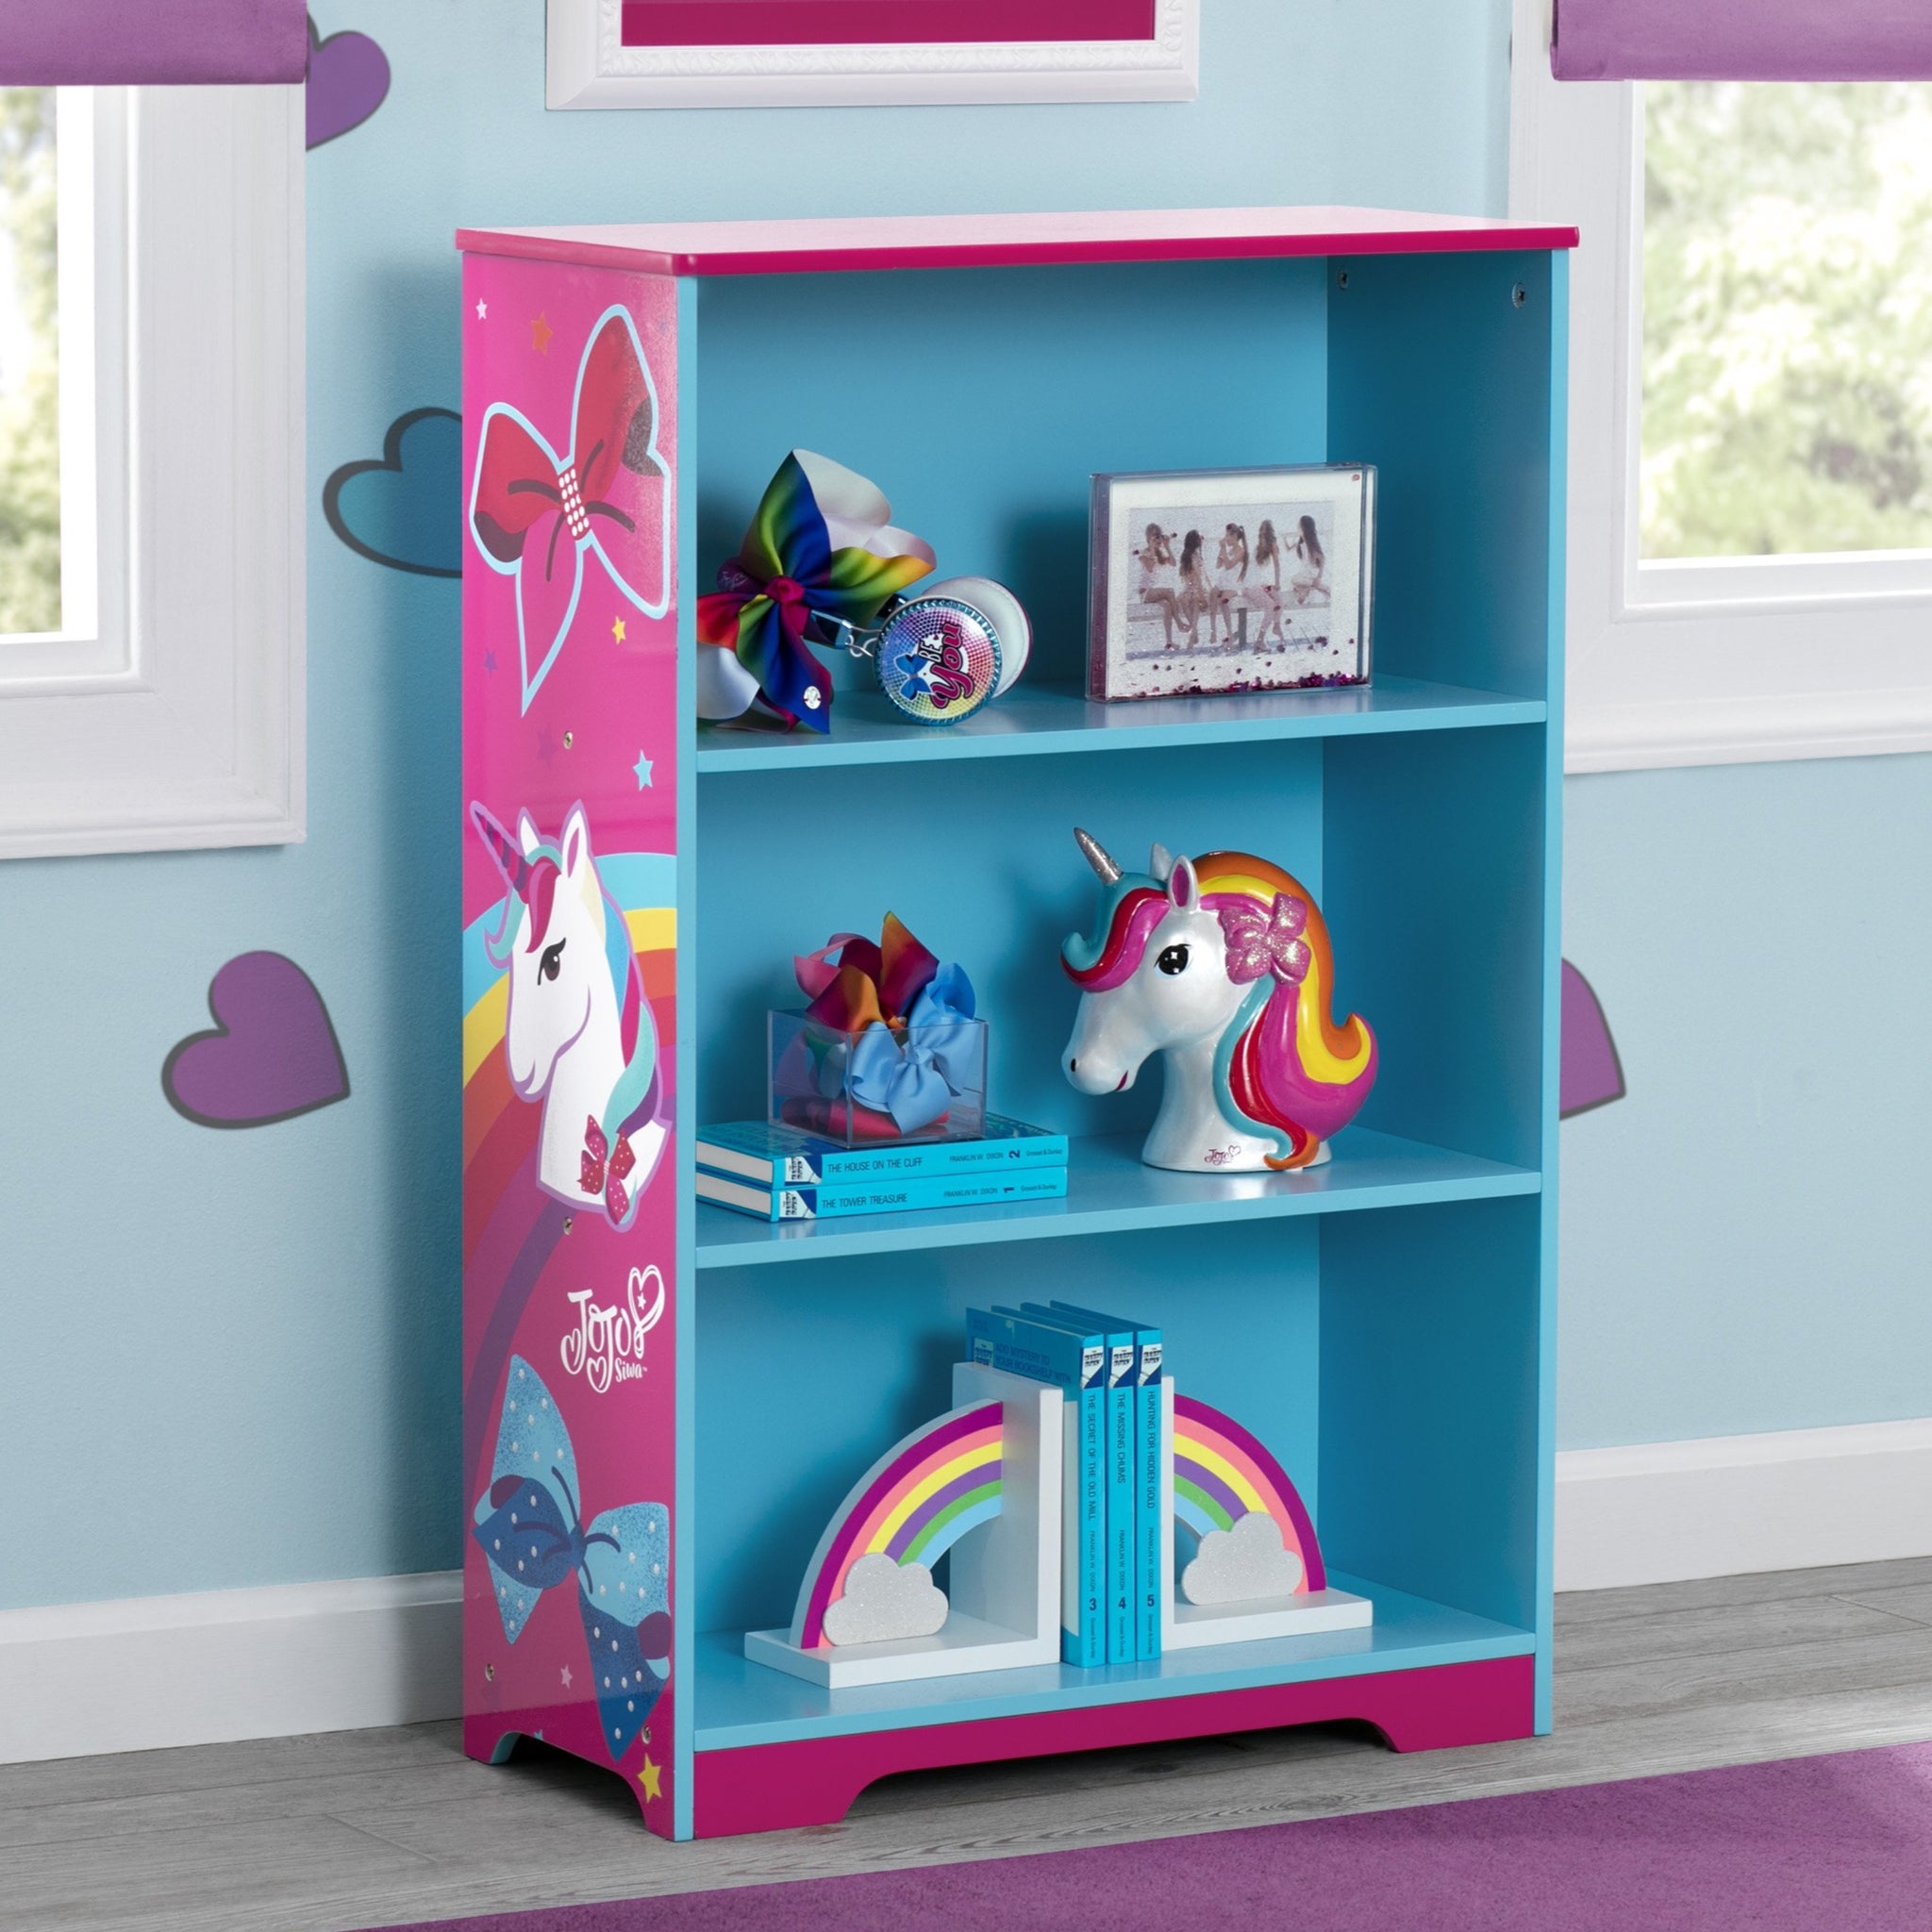 Delta Children JoJo Siwa Deluxe 3-Shelf Bookcase, Hangtag View